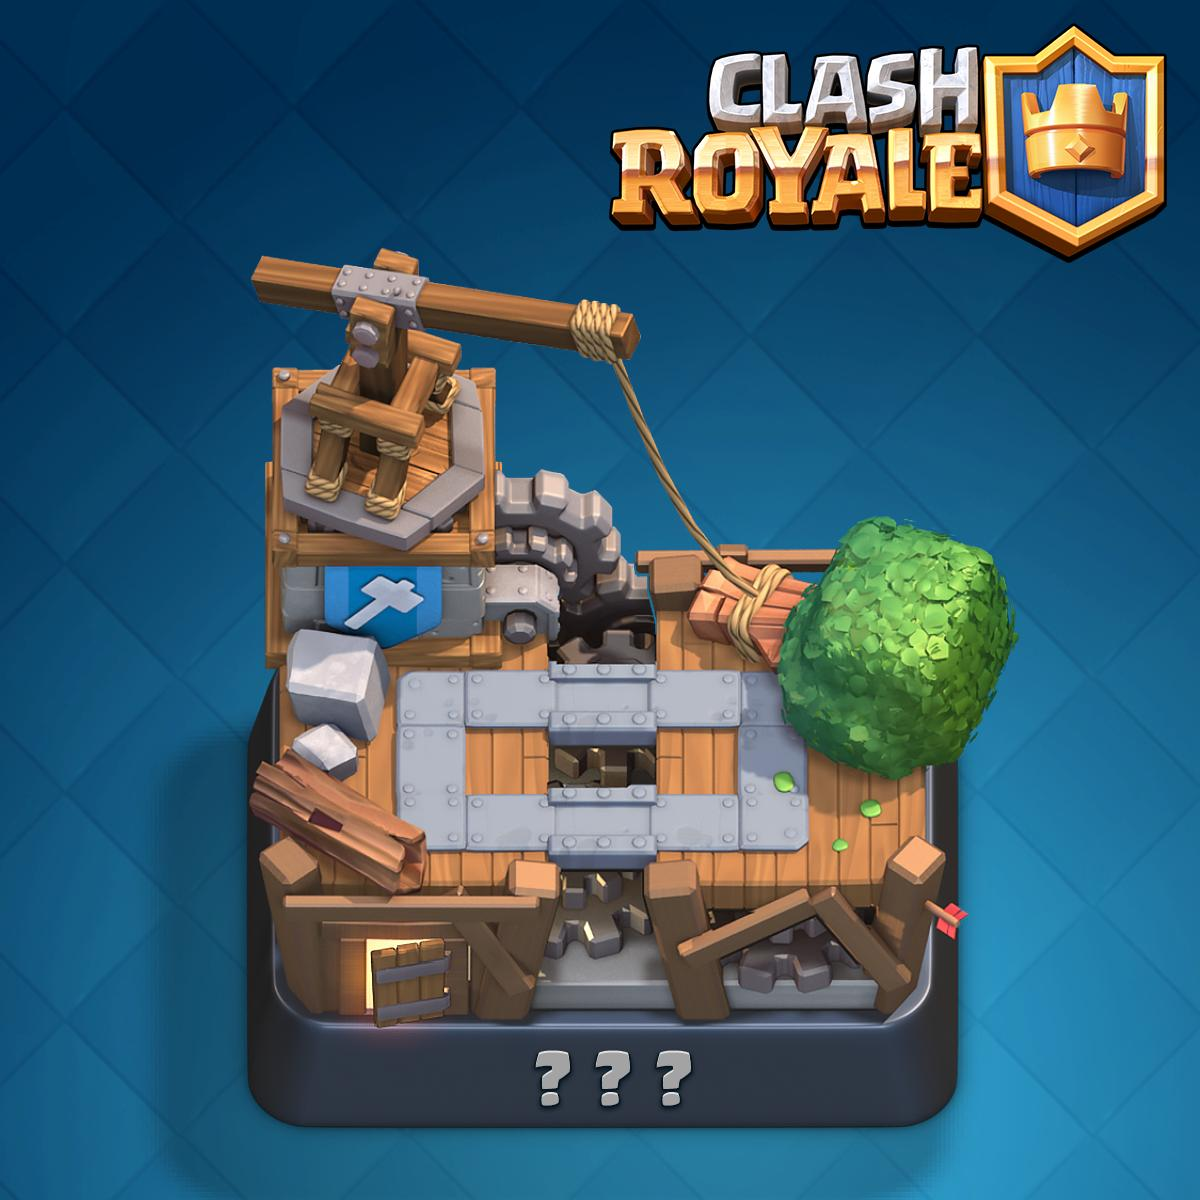 Clash Royale's latest update nerfs Inferno Dragon and Bomb Tower